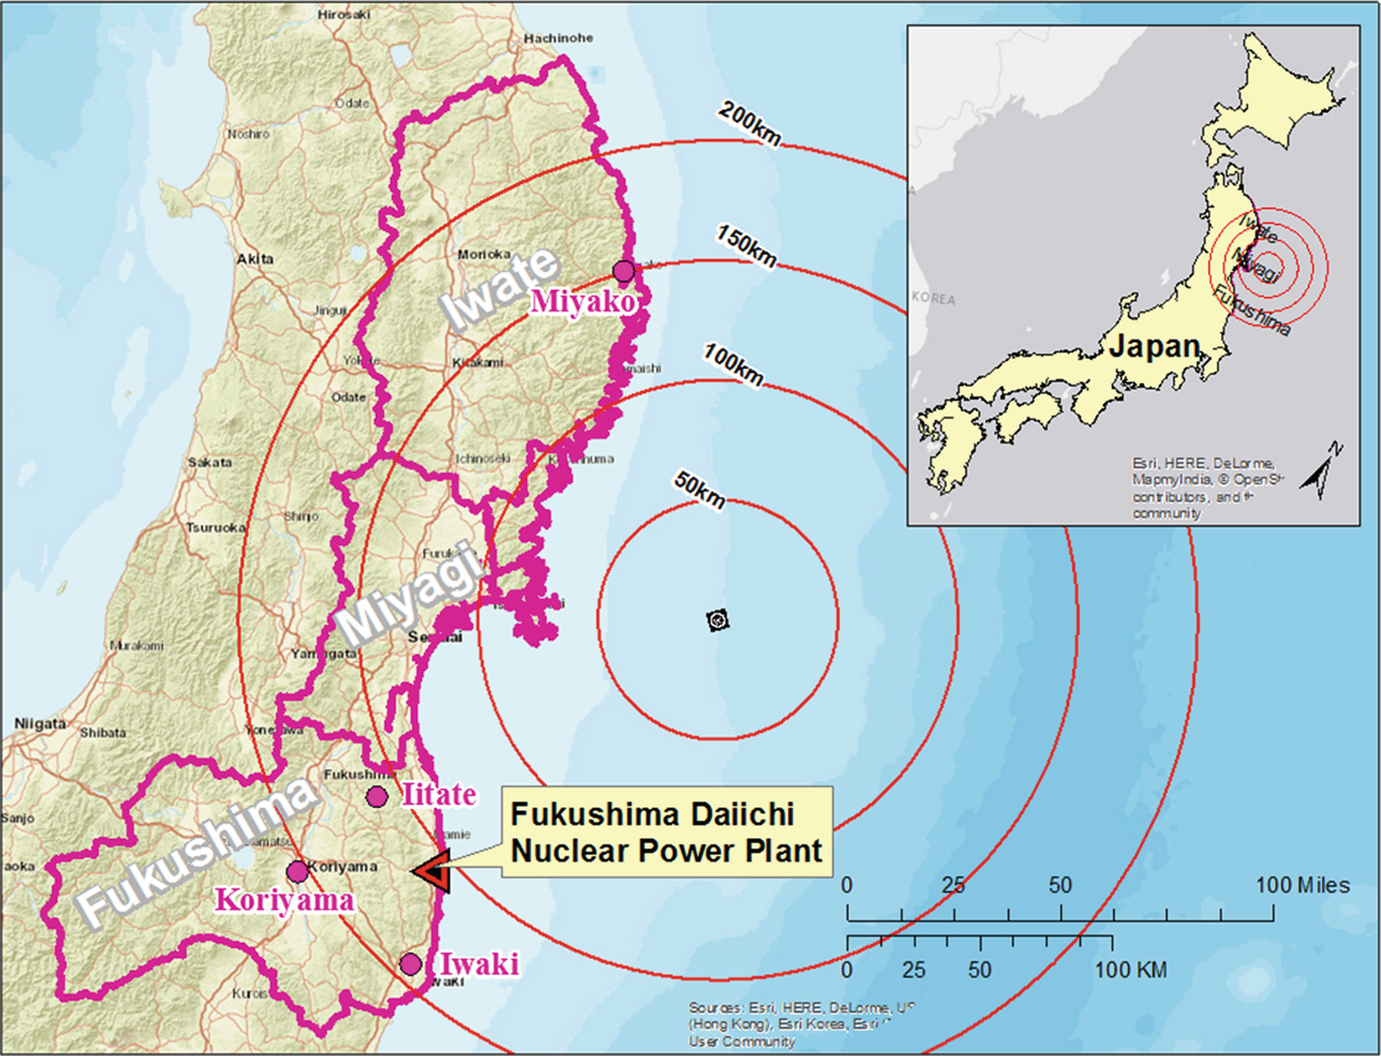 Japan's Fukushima Daiichi Nuclear Power Plant Accident